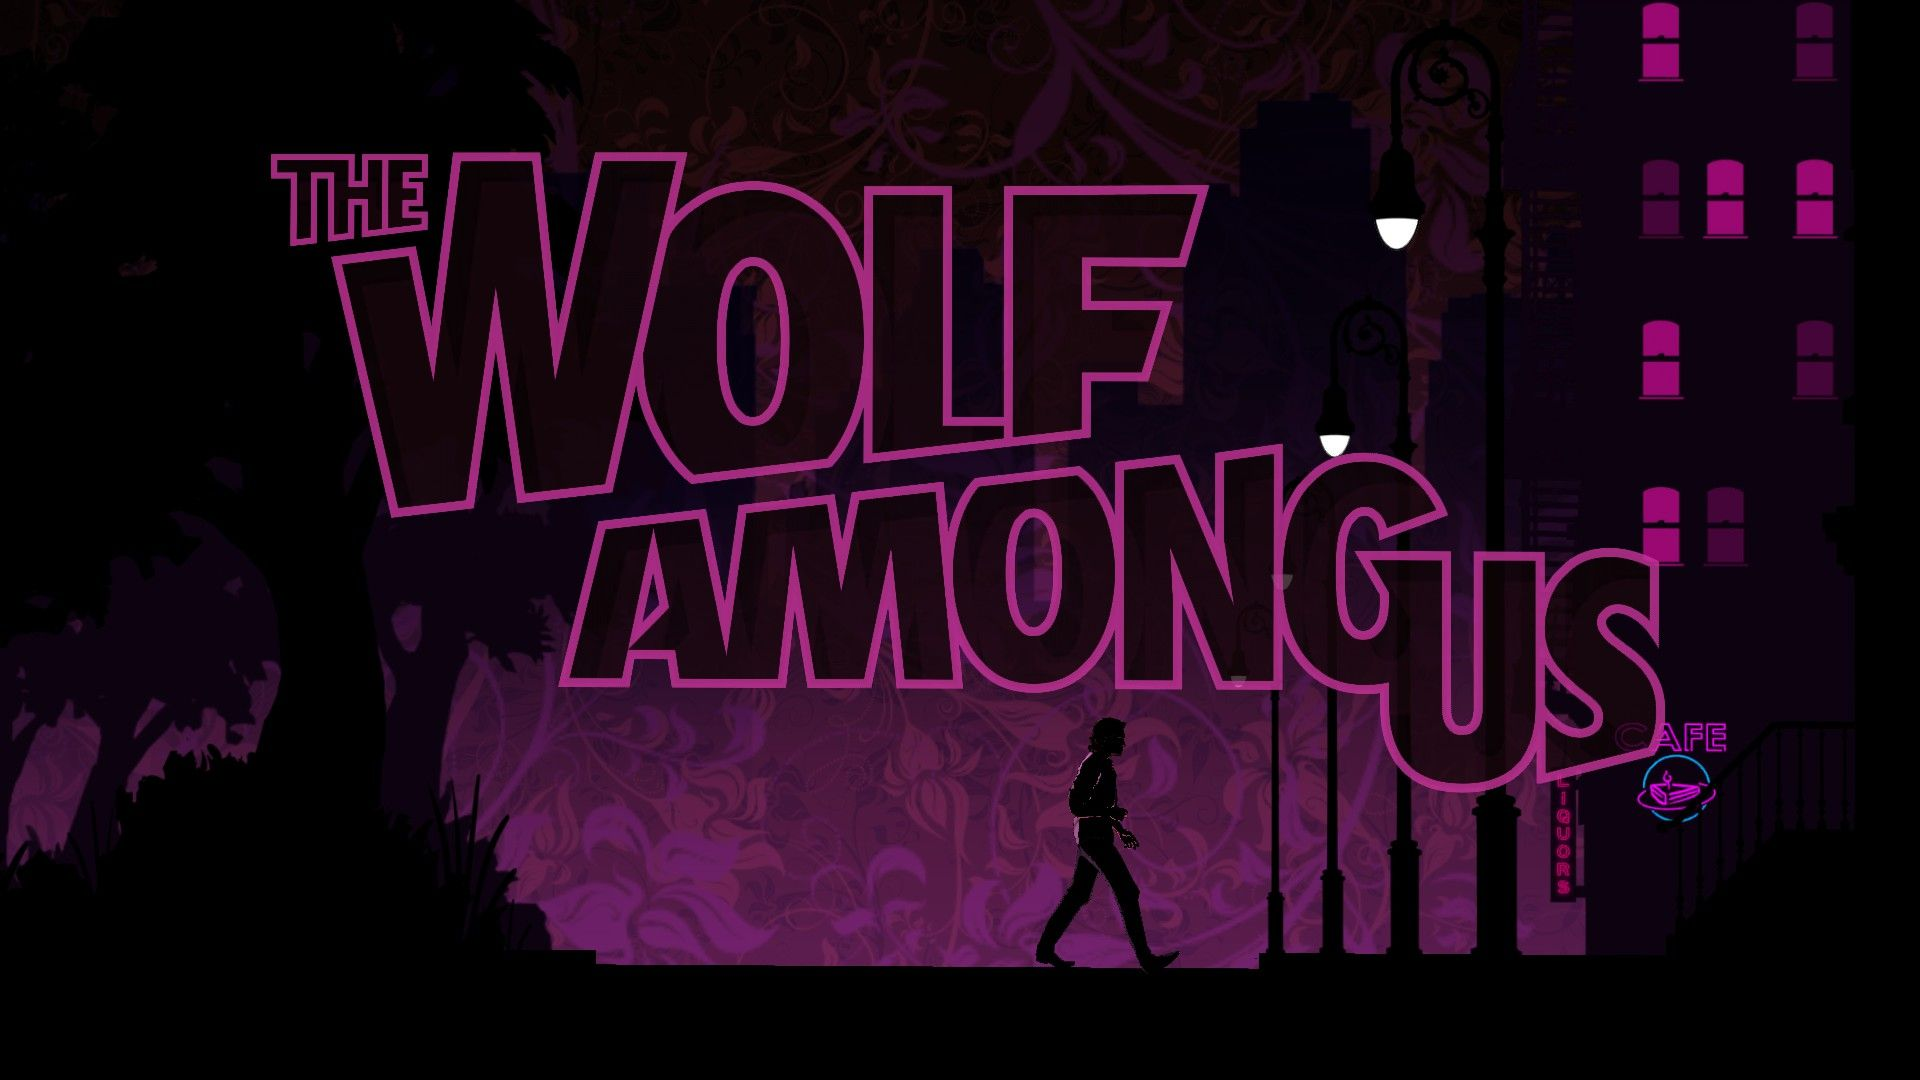 Hd The Wolf Among Us Wallpaper Kolpaper Awesome Free Hd Wallpapers